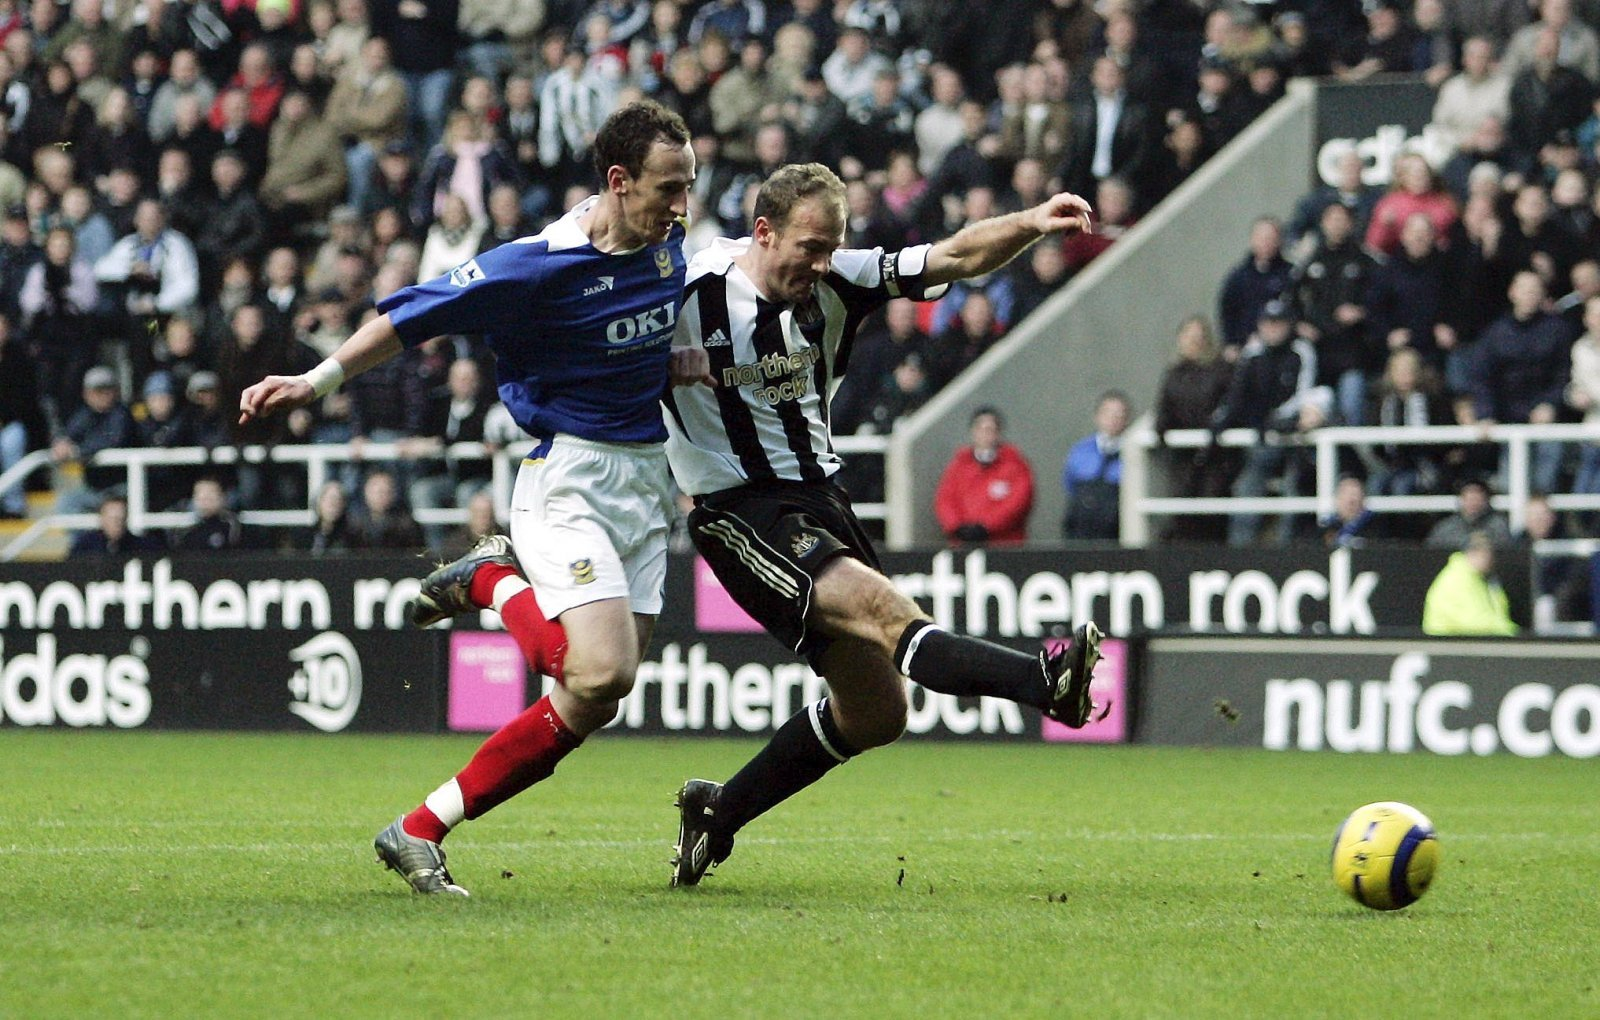 Alan Shearer scores the record breaking goal